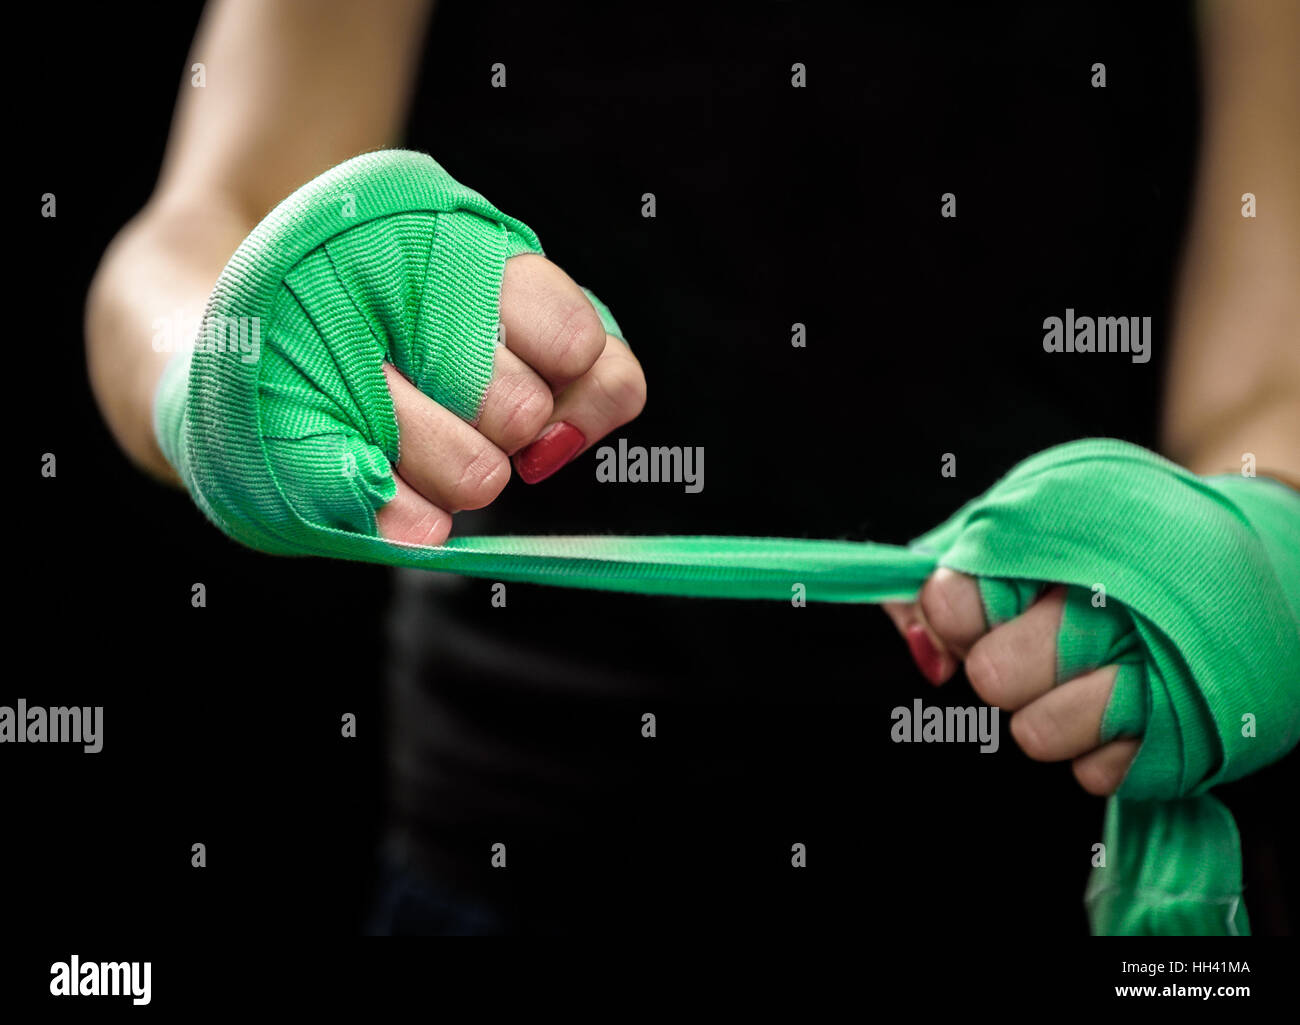 Woman Wrapping Hand Boxing Training Imágenes De Stock & Woman ...